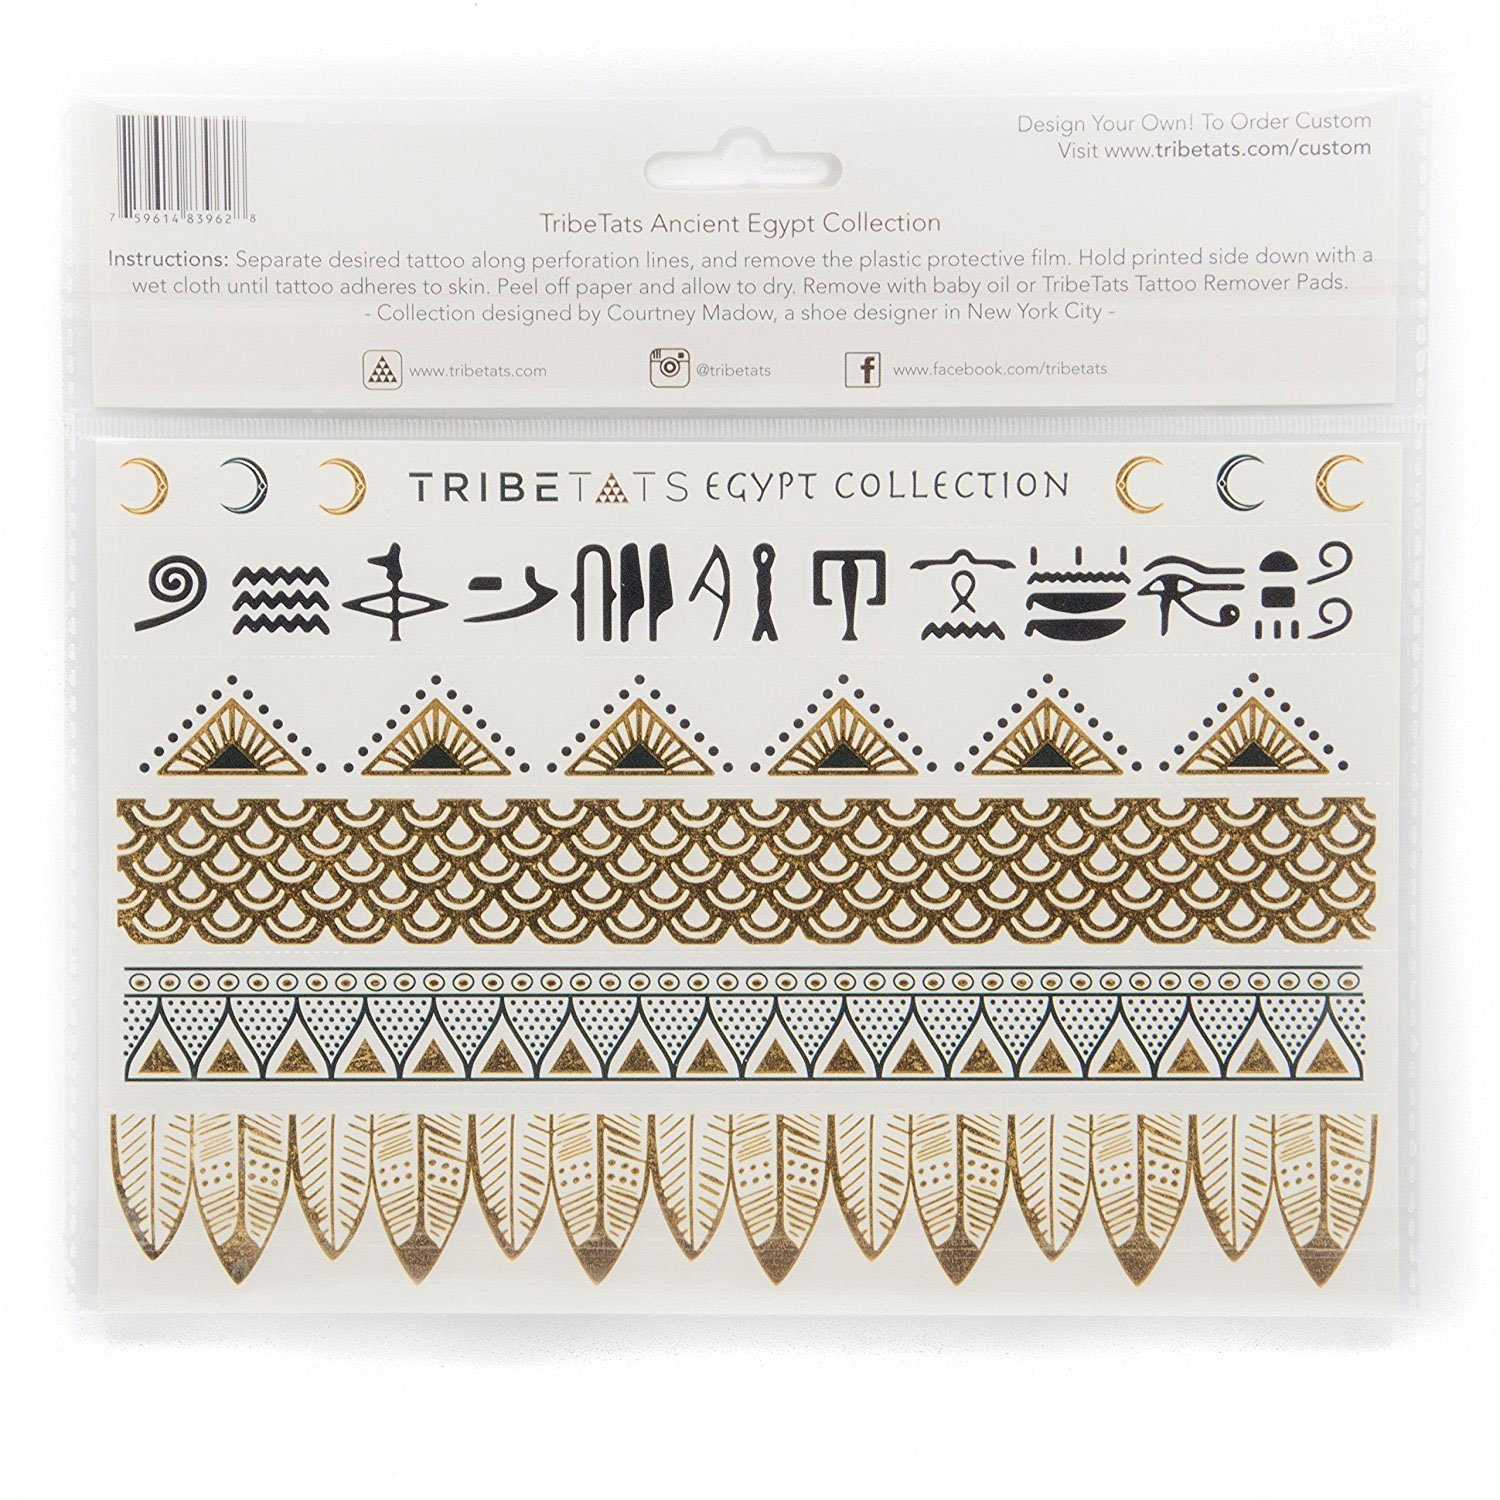 ada5493e8 Amazon.com : Ancient Egypt Collection - Designer Metallic Flash Temporary  Tattoos by TribeTats - Black & Gold Egyptian, Henna Inspired Body Art -  Includes: ...